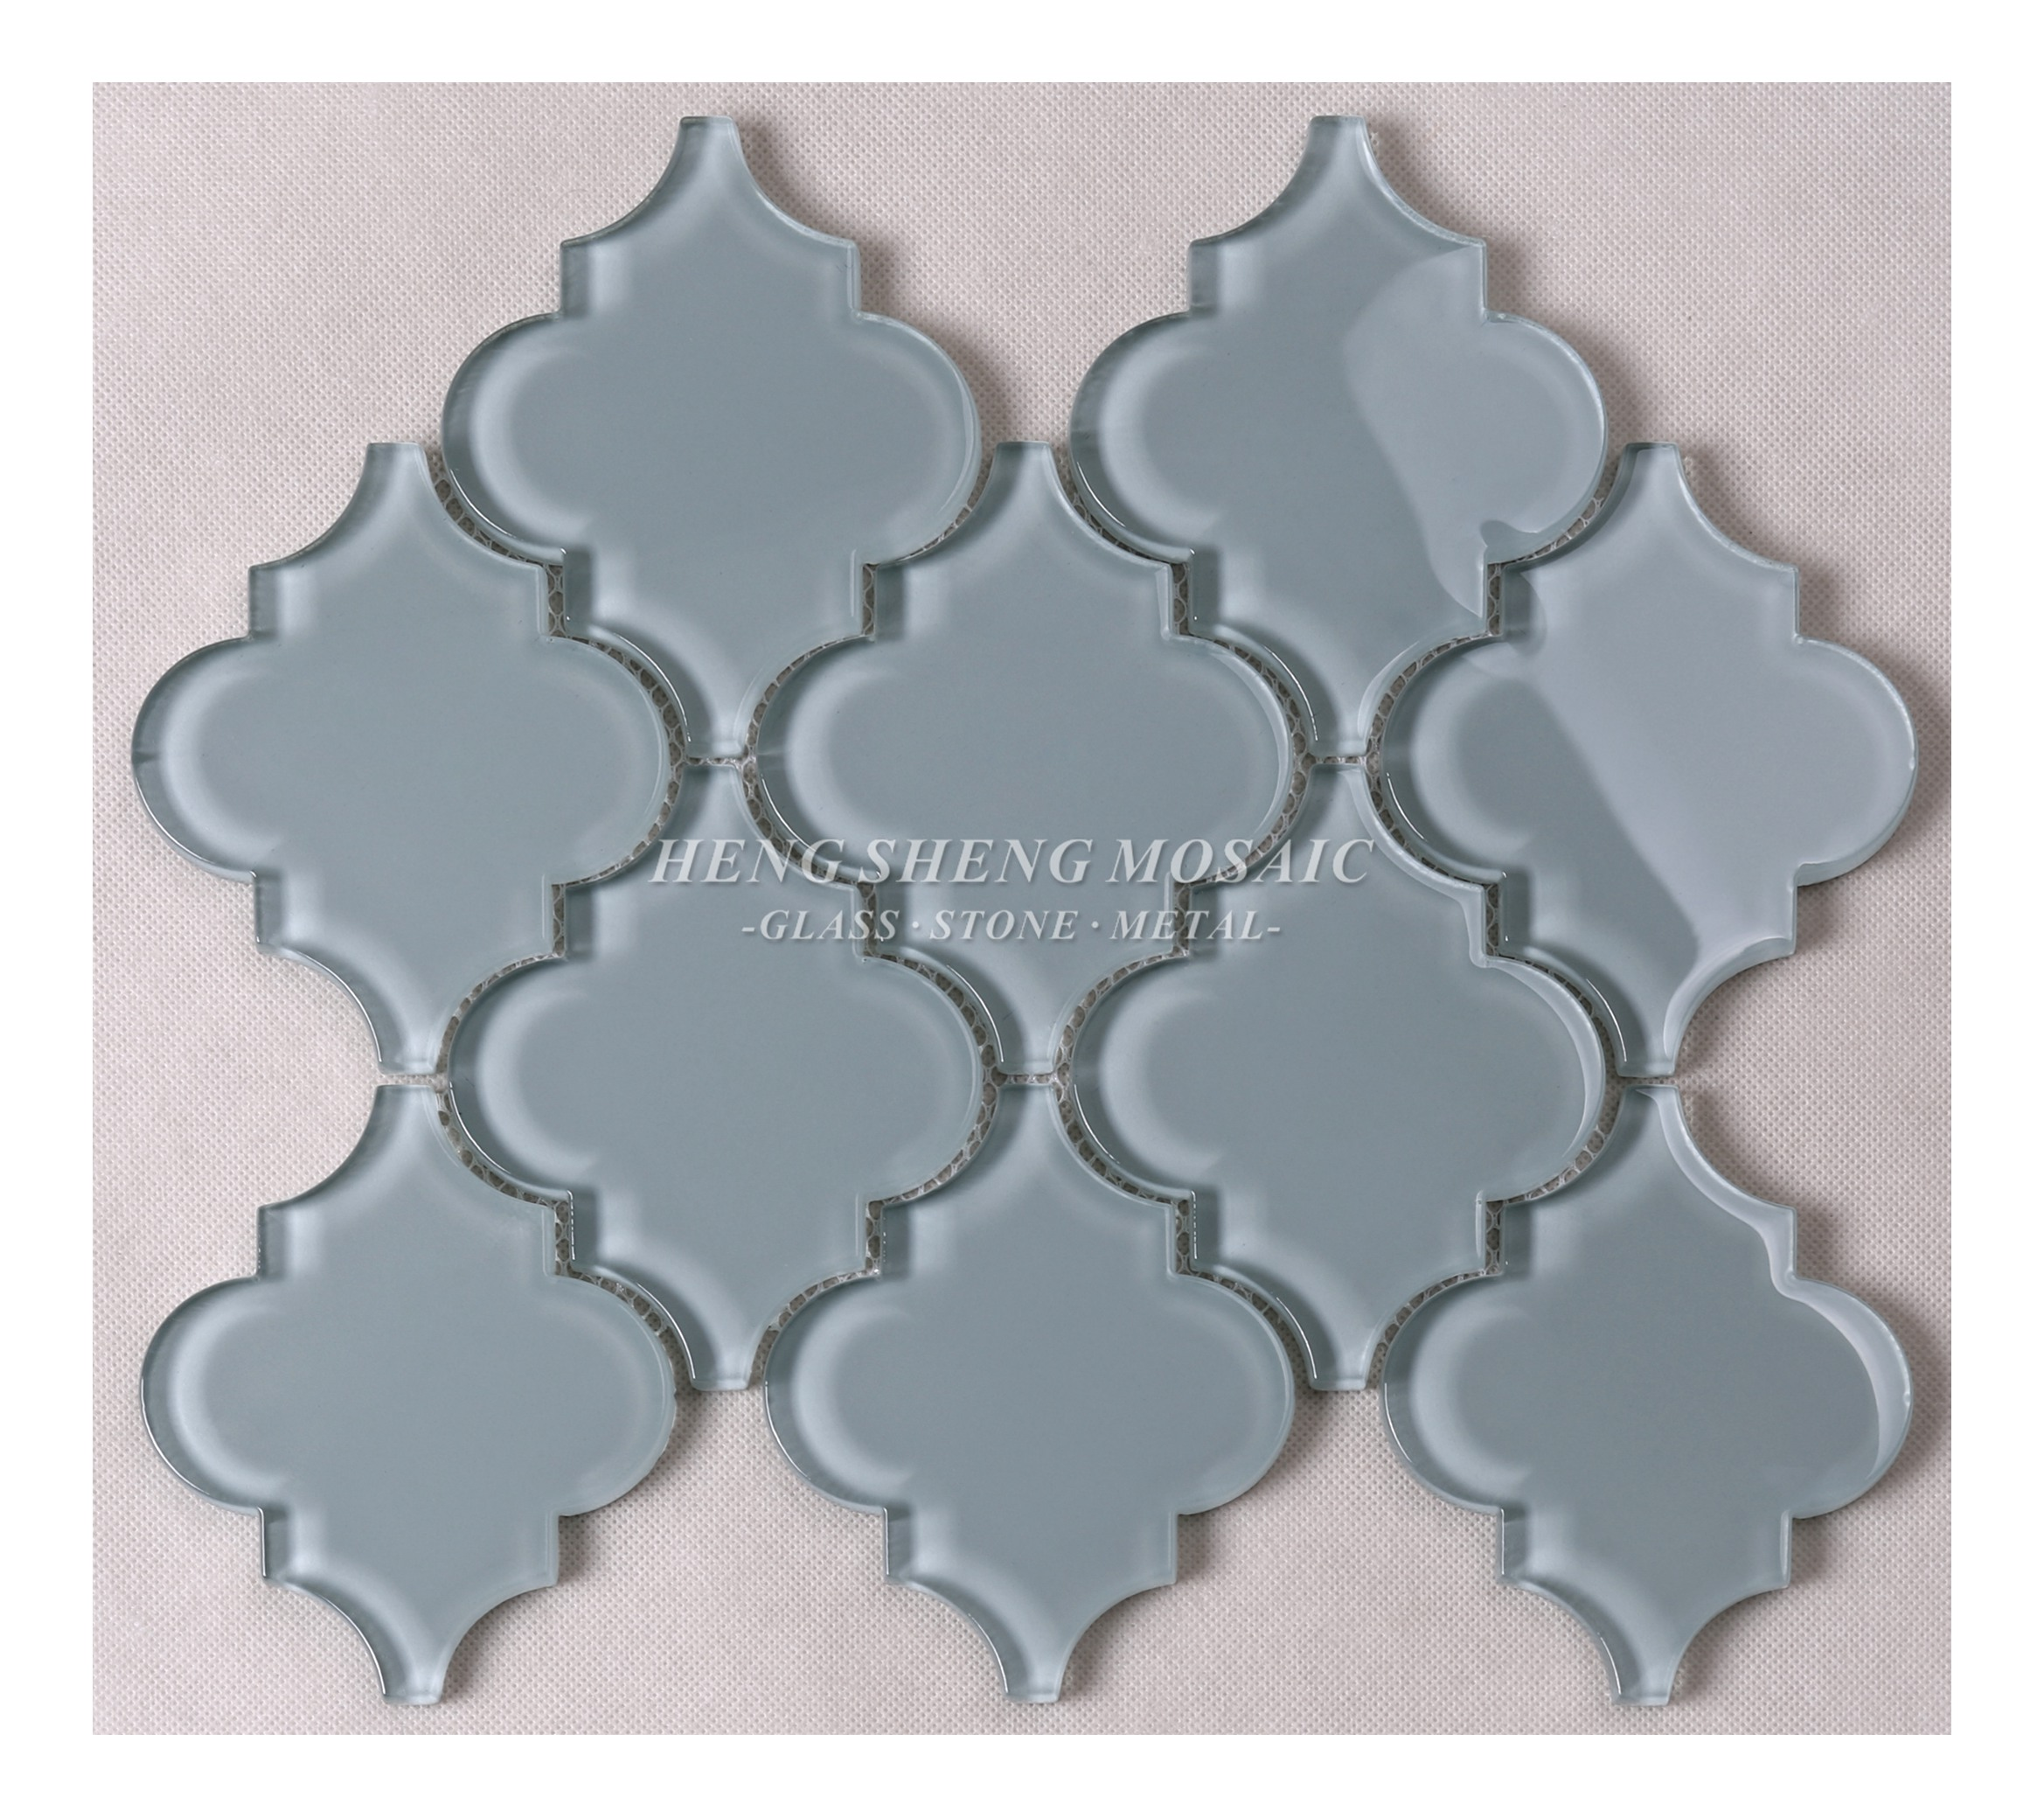 - Iridescent Unique Arabesque Lantern Waterjet Marble Stone Broken Mosaic  Glass Kitchen Backsplash Wall Tile Price, View Lantern Mosaic Tile, HENG  SHENG Product Details From Foshan Nanhai Hengsheng Crystal Mosaic Co., Ltd.  On